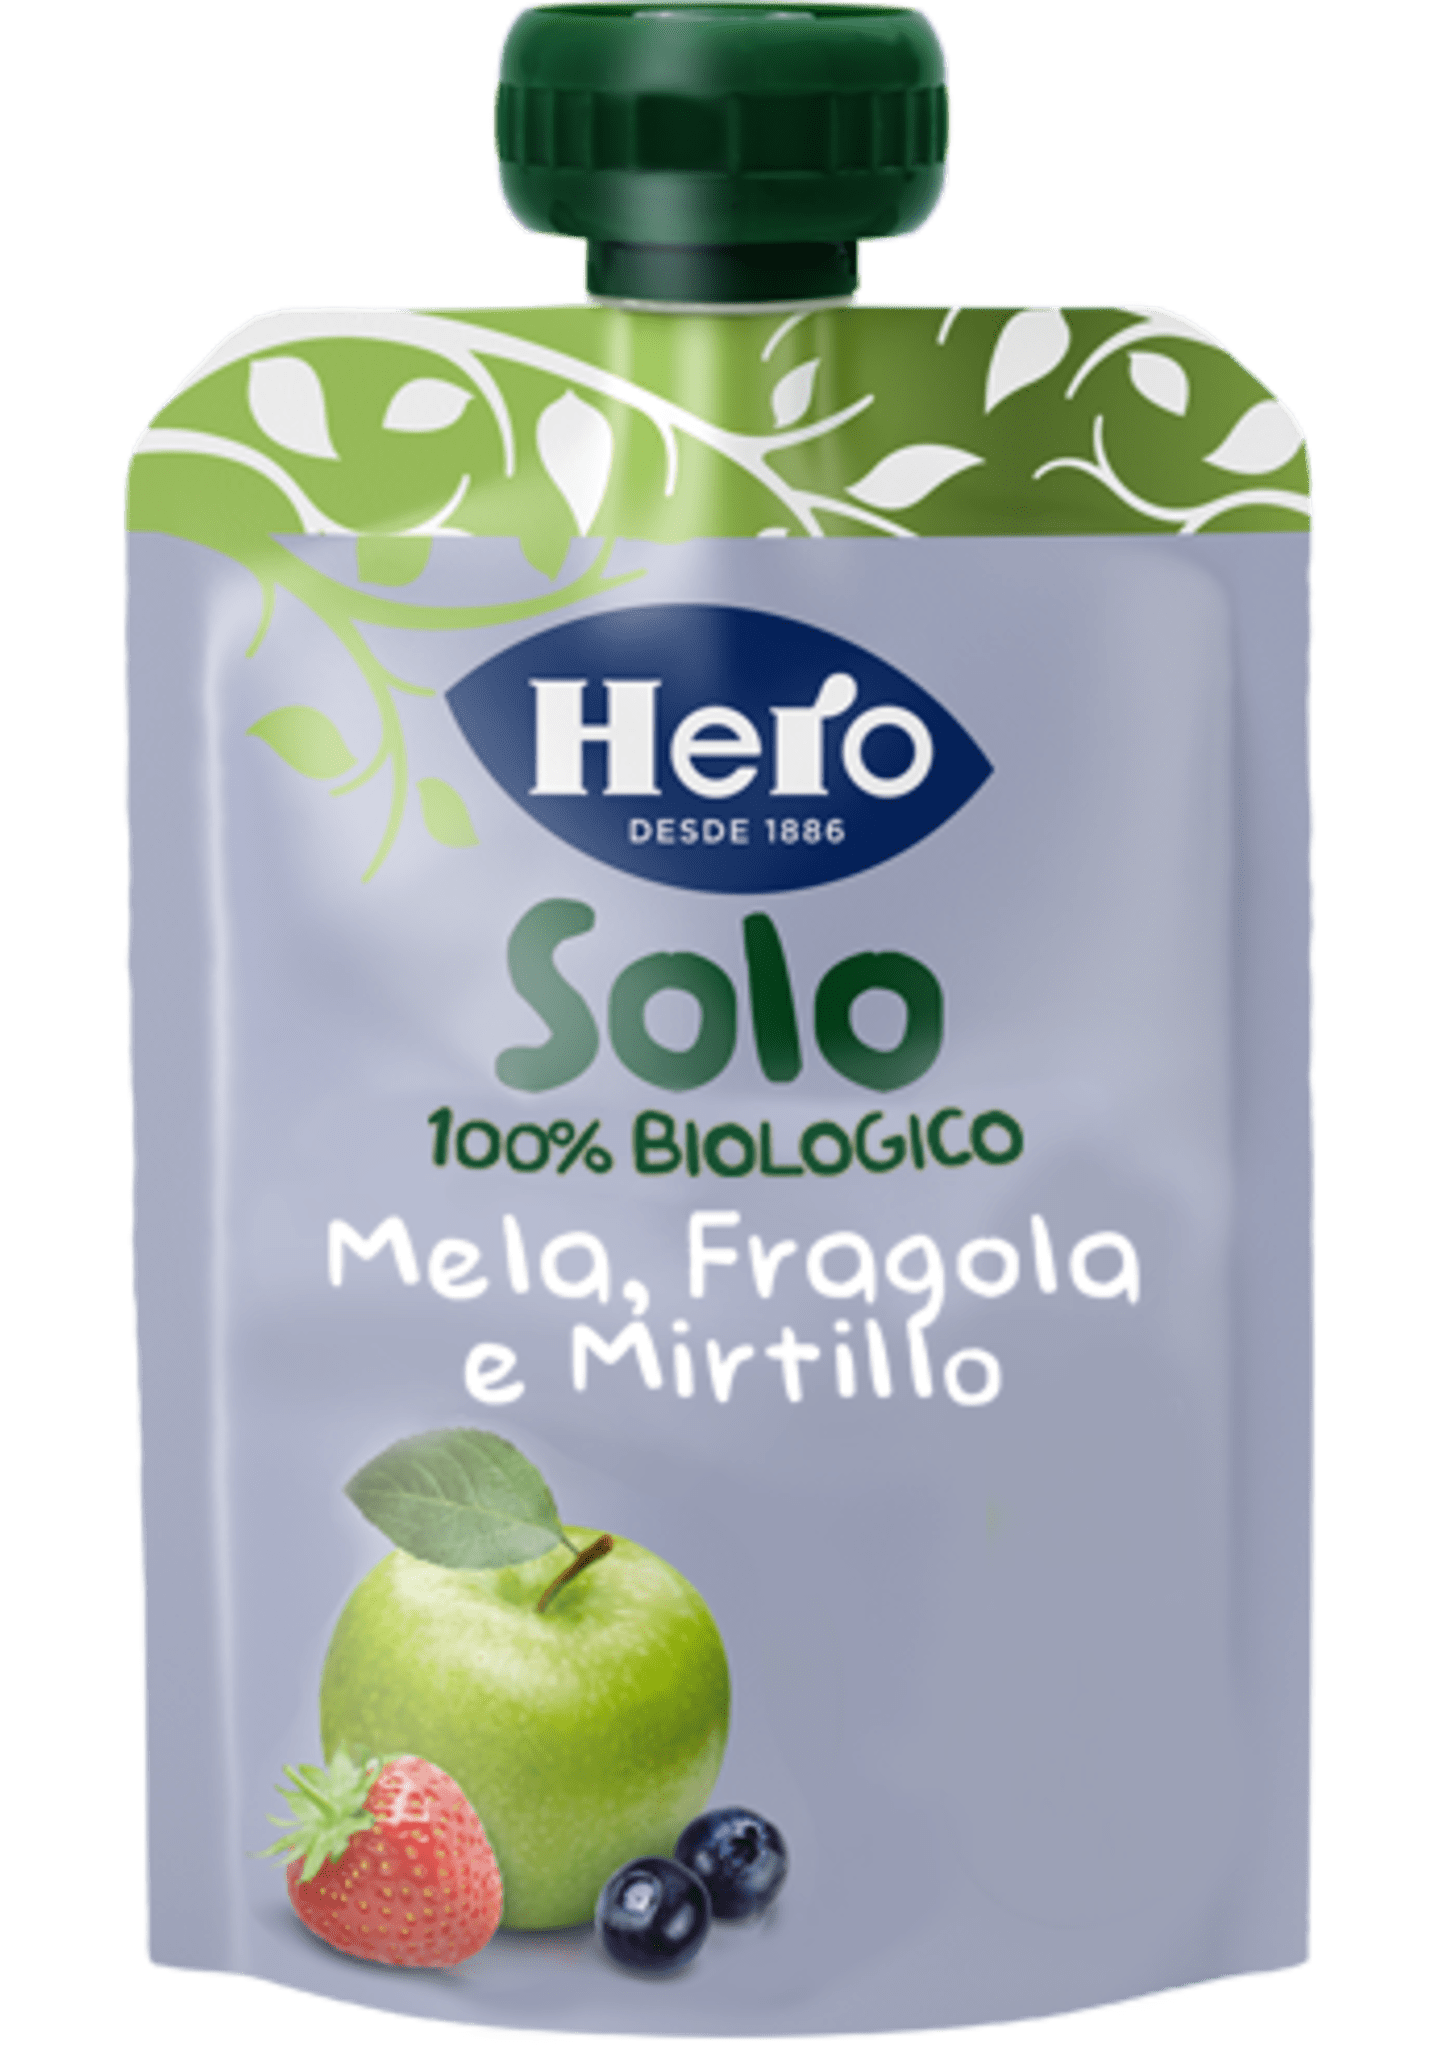 Mela, Fragola e Mirtilli Biologici